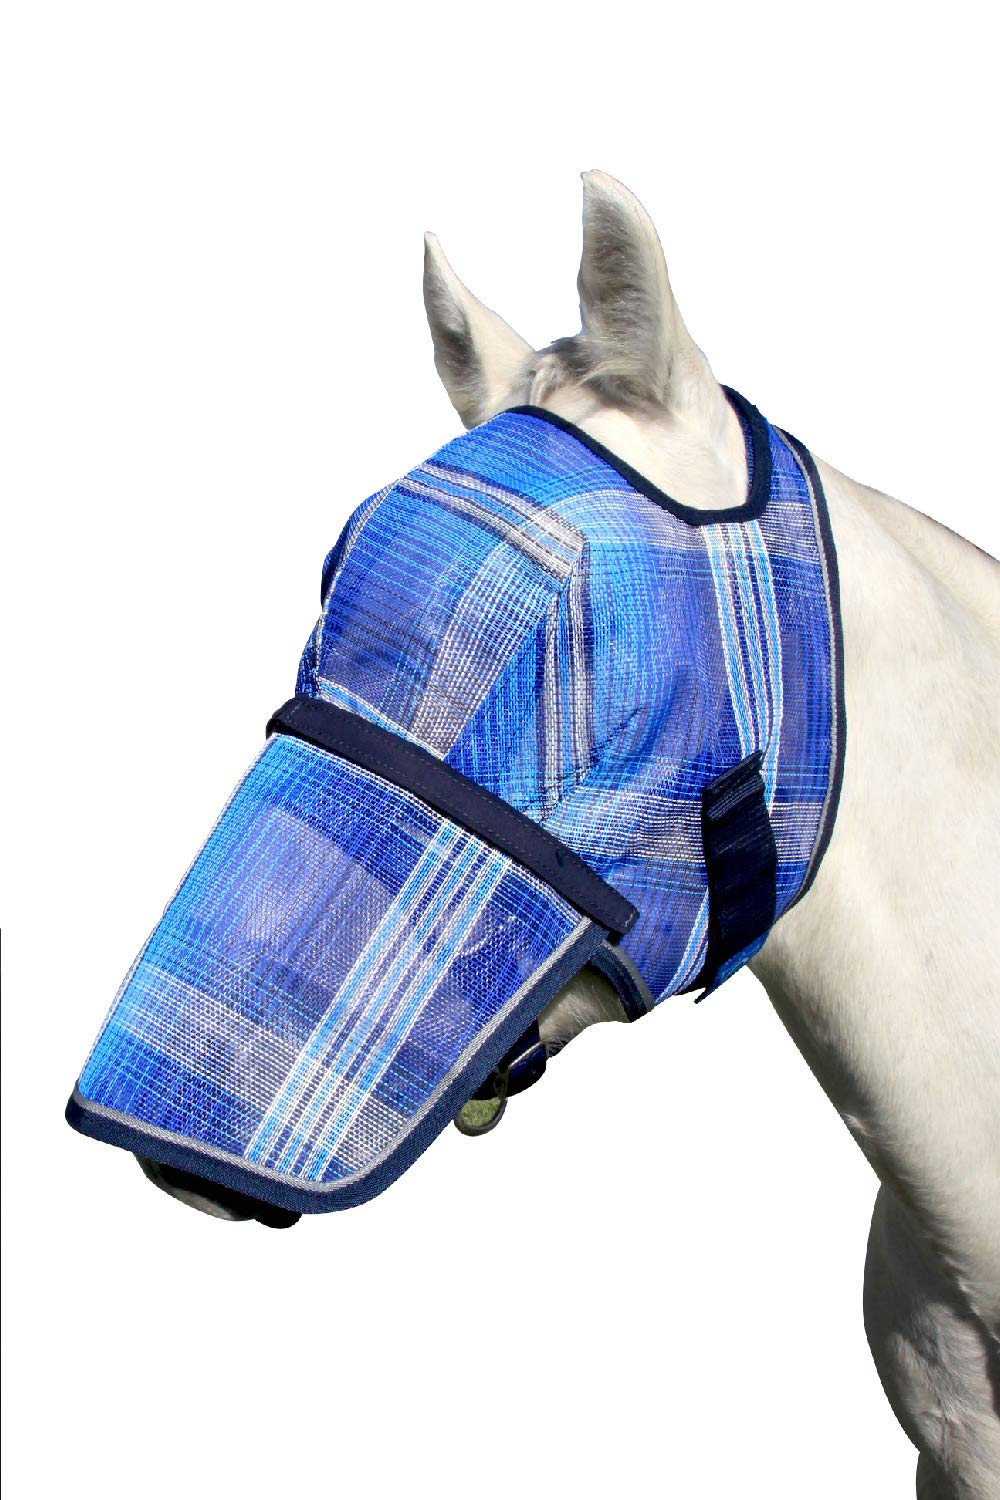 Kensington Signature Removable Nose Fly Mask - Protects Horses Face Nose from Insects, UV Rays, While Allowing Full Visibility - Ears Forelock Able to Come Through The Mask (L, Kentucky Blue) by Kensington Protective Products